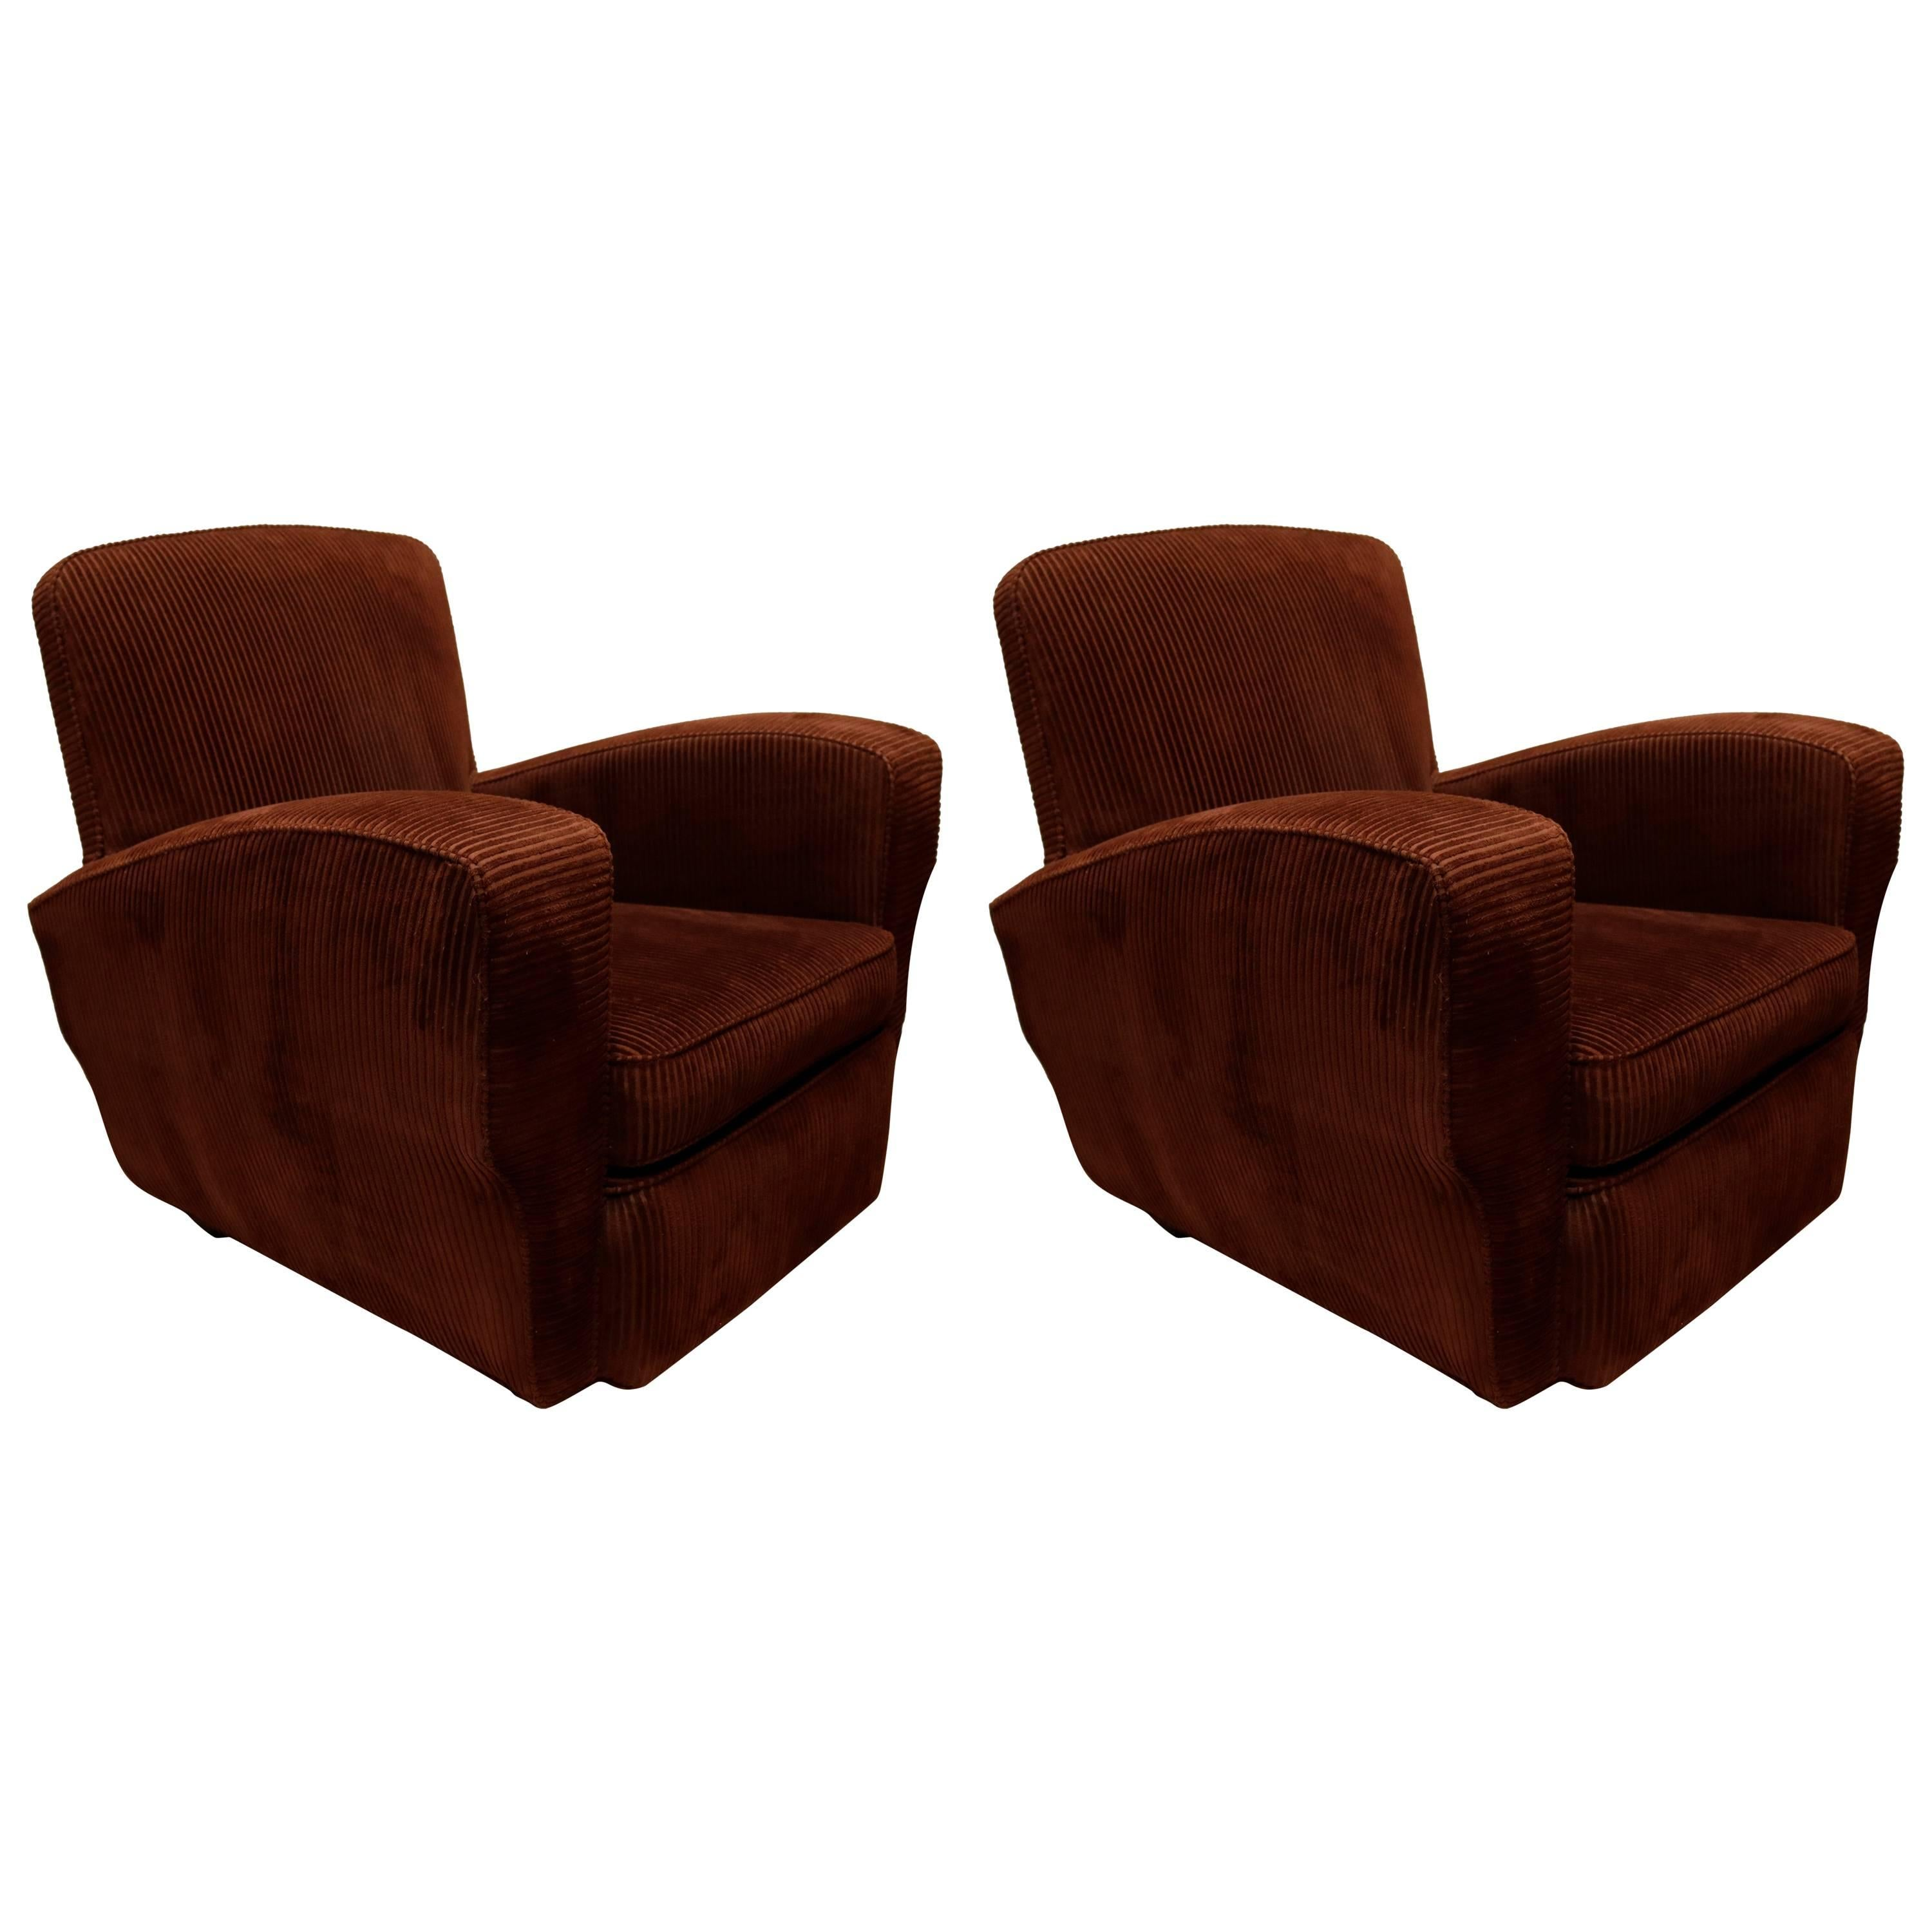 Captivating Pair Of French Corduroy Club Chairs 1